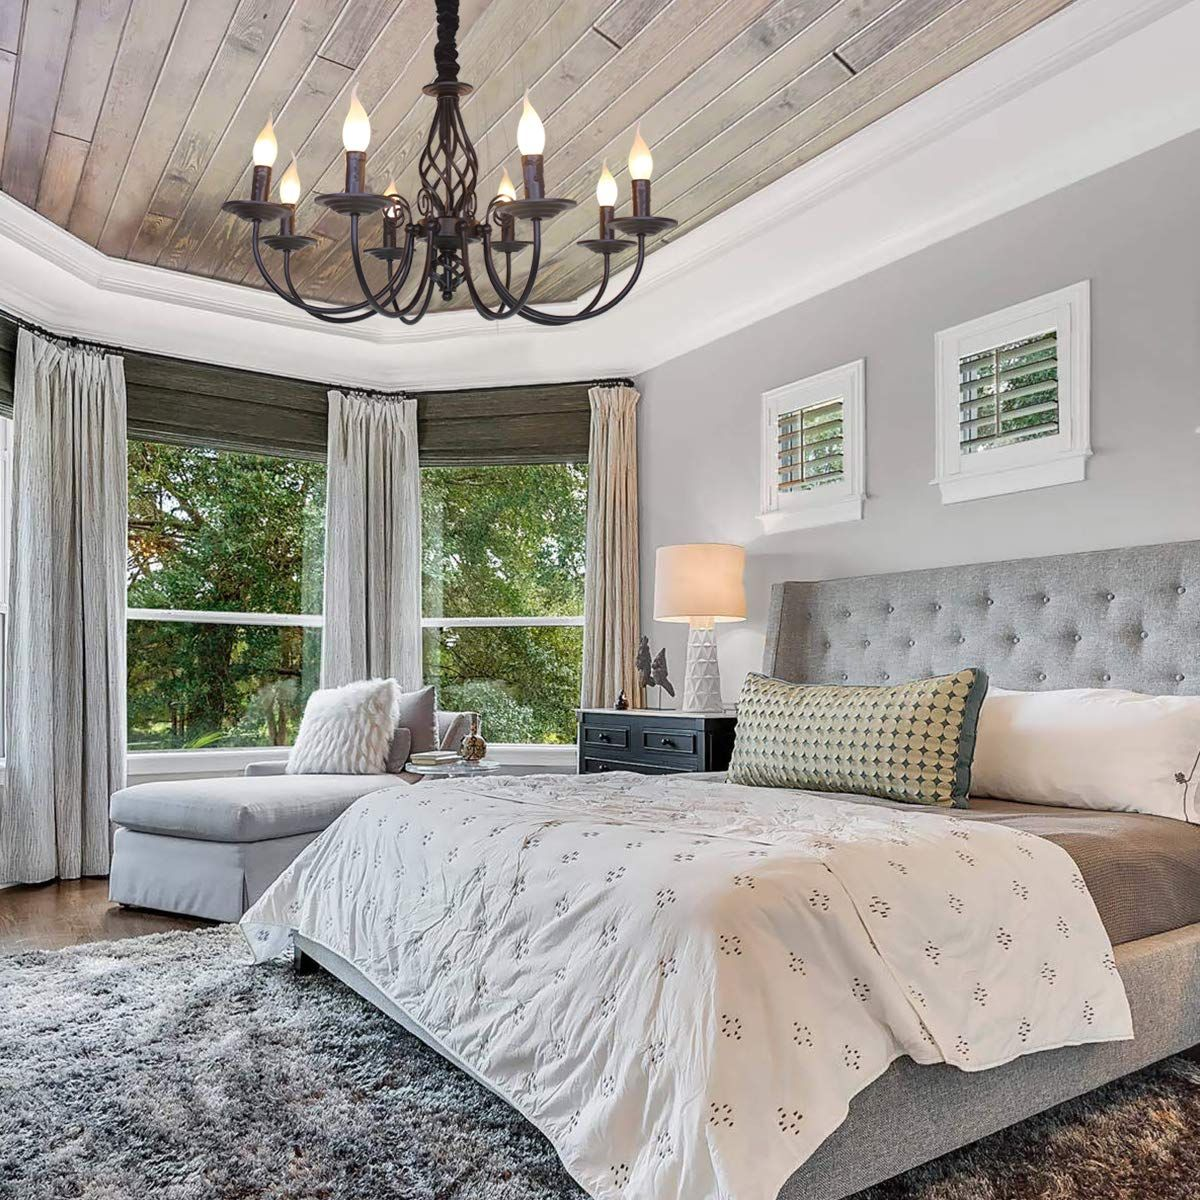 20 Bedroom Chandelier Designs Decorating Ideas: Ganeed Rustic Chandelier,8 Lights French Country